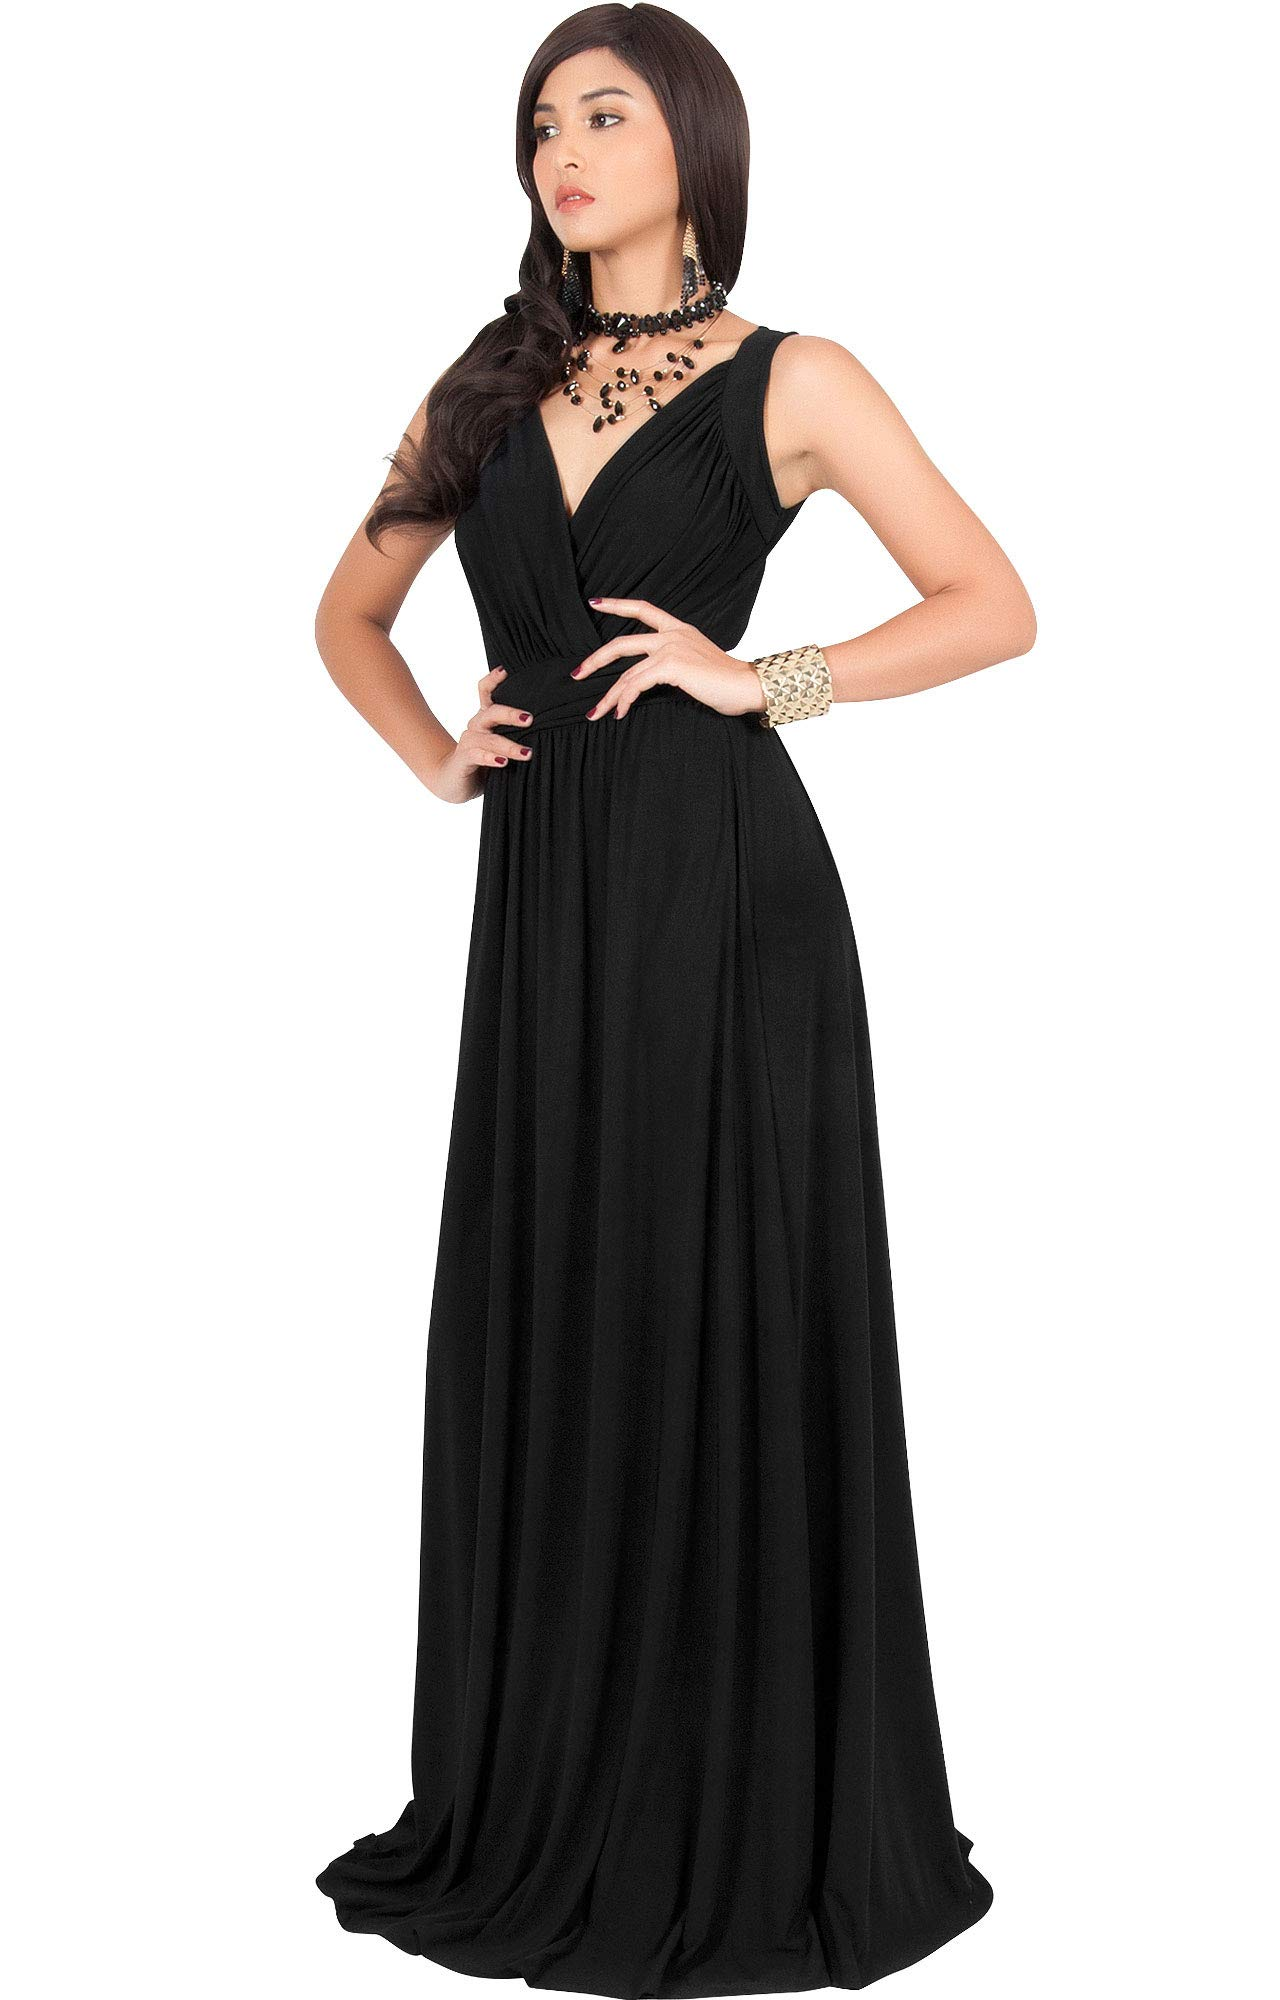 KOH KOH Womens Long Sleeveless Flowy Bridesmaids Cocktail Party Evening Formal Sexy Summer Wedding Guest Ball Prom Gown Gowns Maxi Dress Dresses, Black L 12-14 by KOH KOH (Image #4)